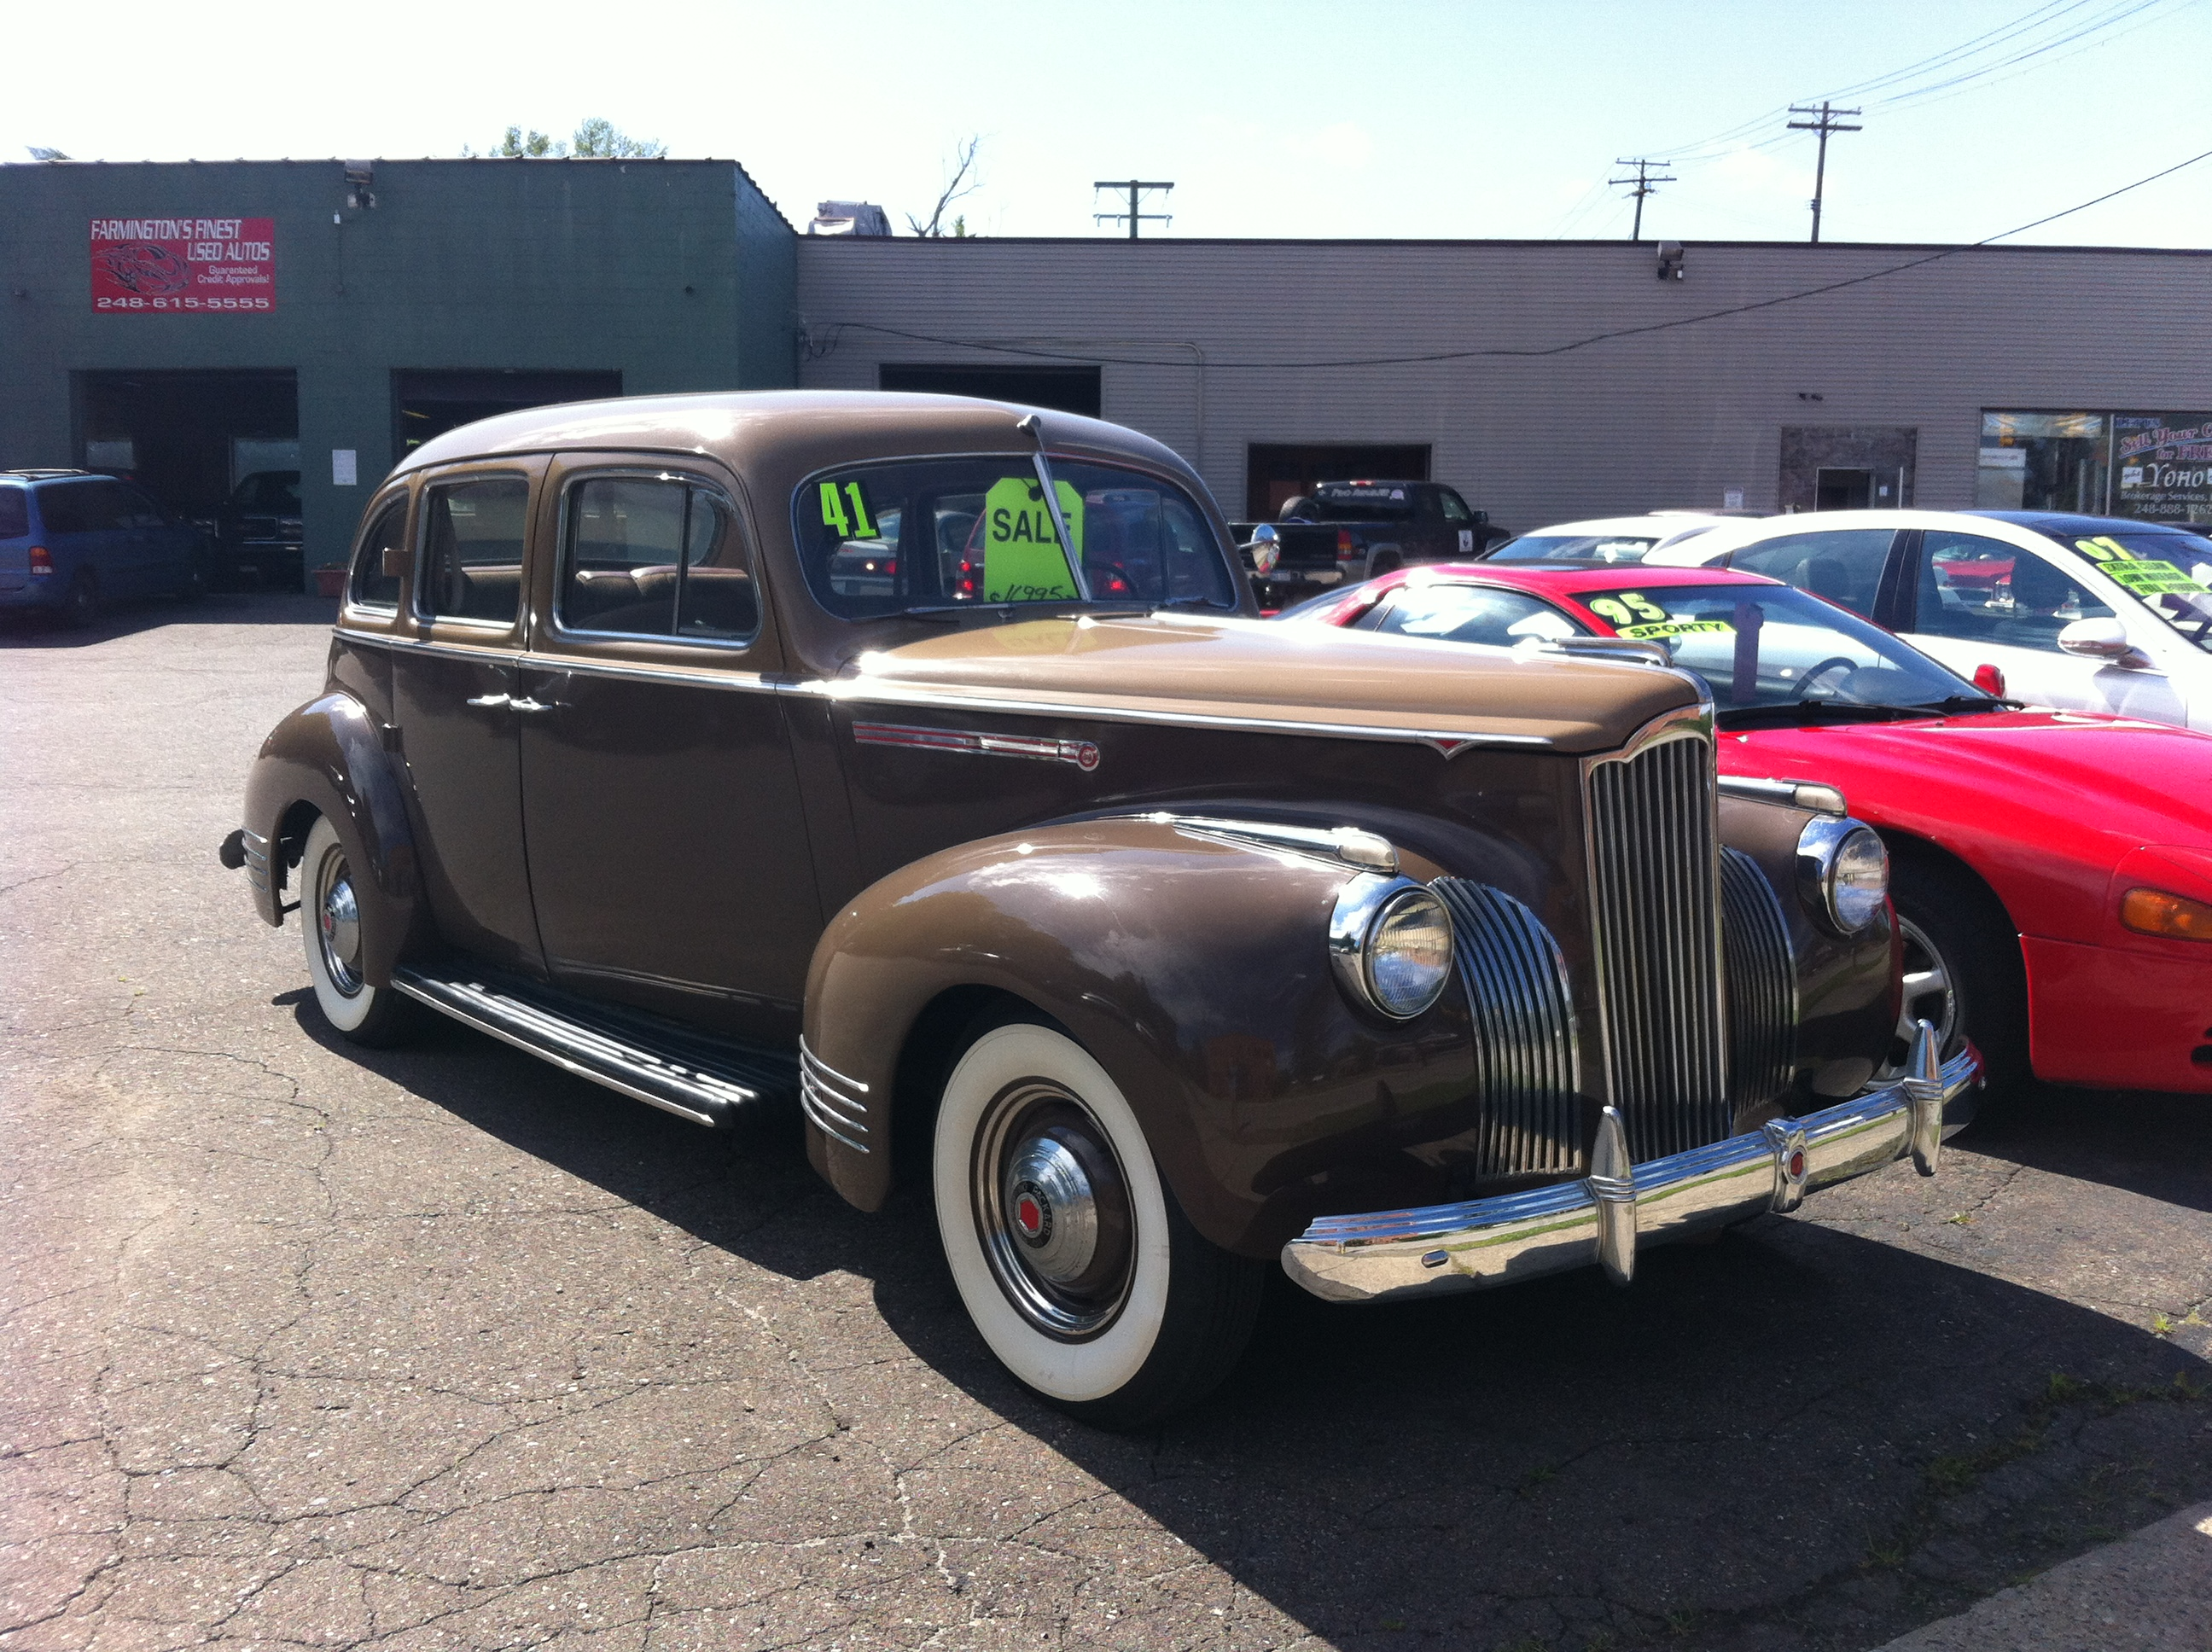 Cc Global American Cars In Pre Communist China The East Is Red Electrical Wiring Diagram For 1941 1948 Studebaker All Trucks Away From Packard Plant It Was Sold Two Weeks Asking 16995 Dealer On Grand River Avenue Be Aware Though They Have Quite Some Tricks